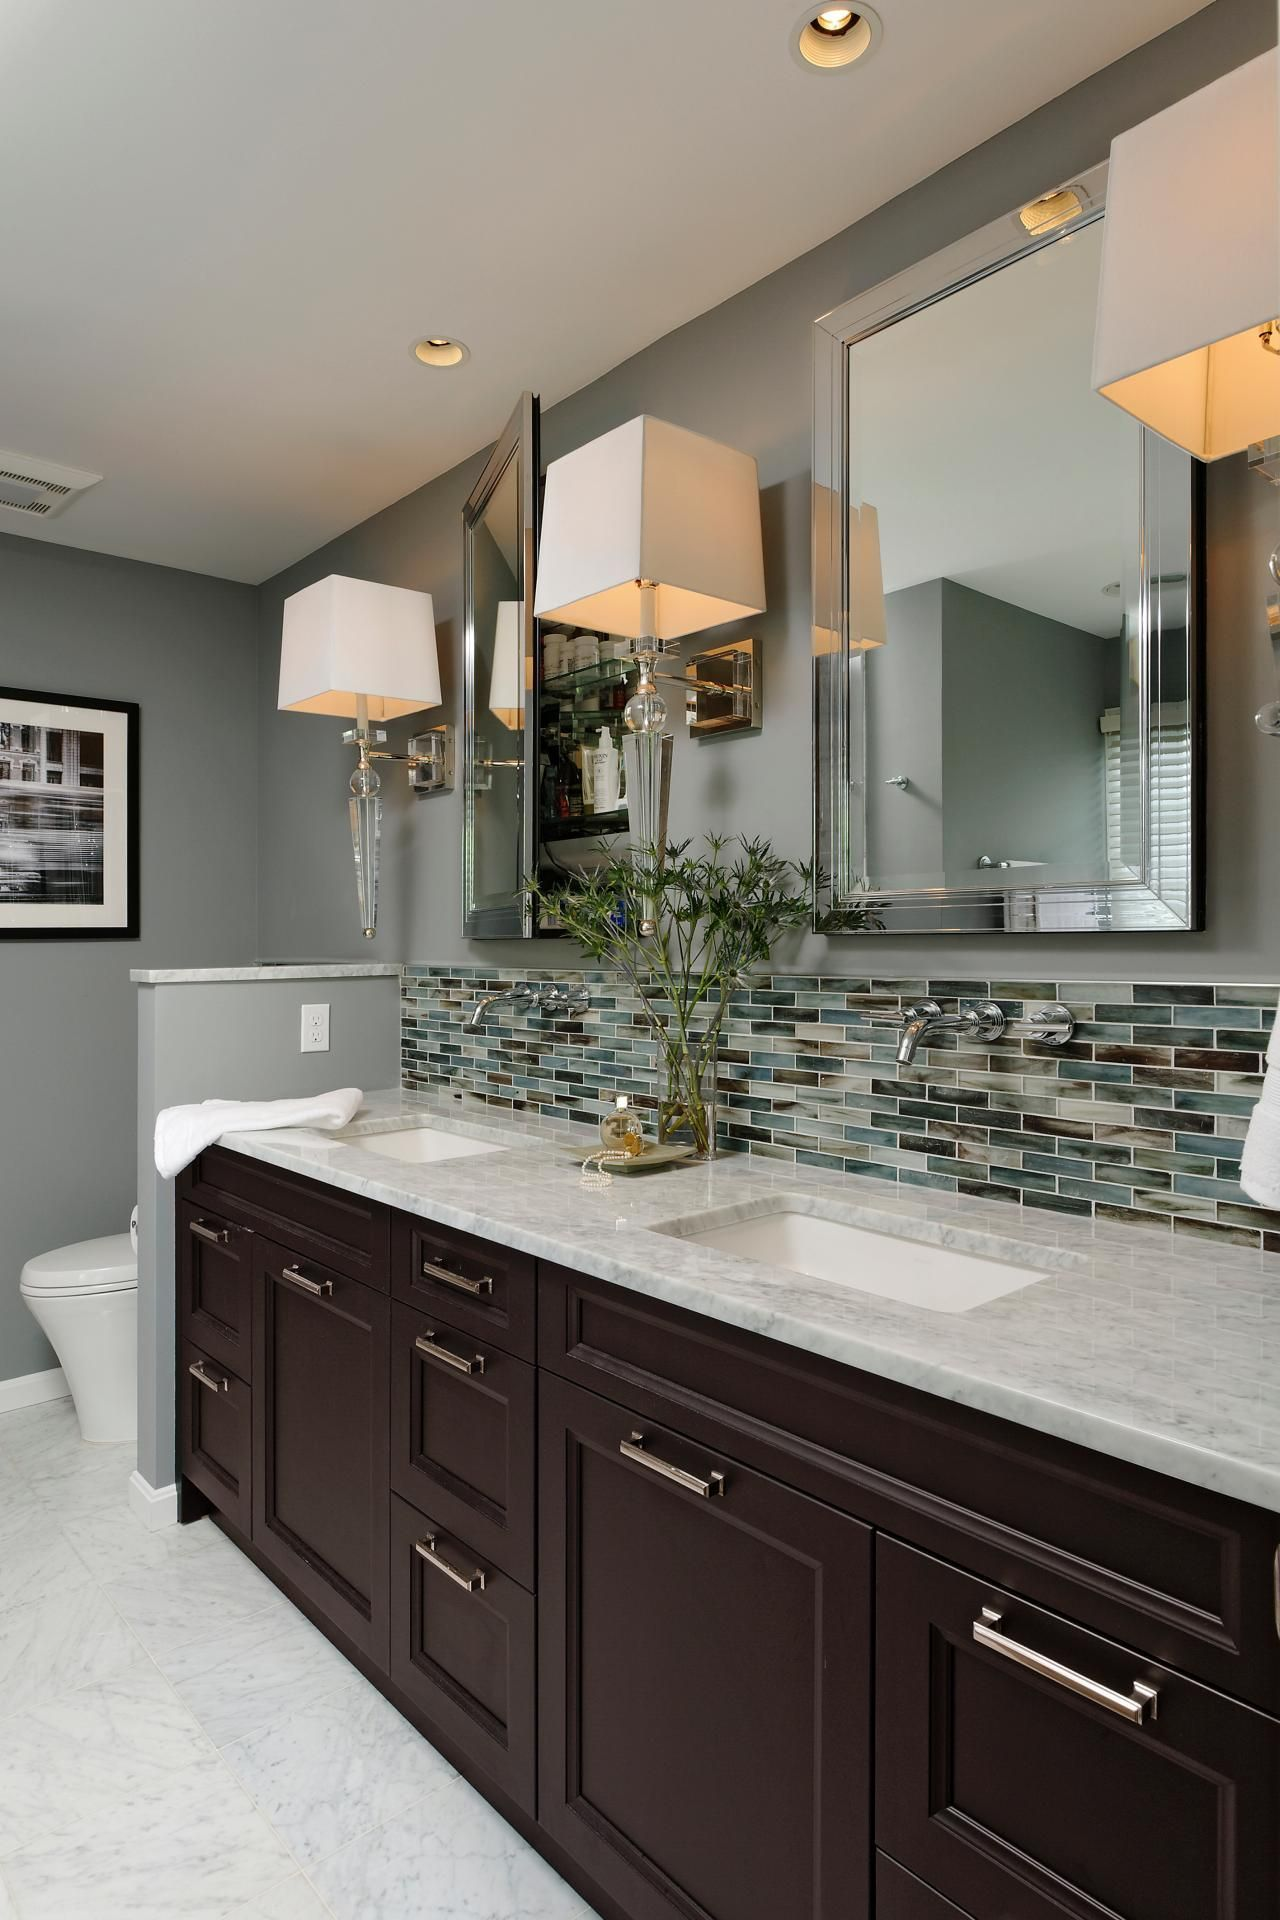 This gray contemporary bathroom features a double vanity design with a Carrera marble countertop glass tile backsplash and polished chrome sconces and